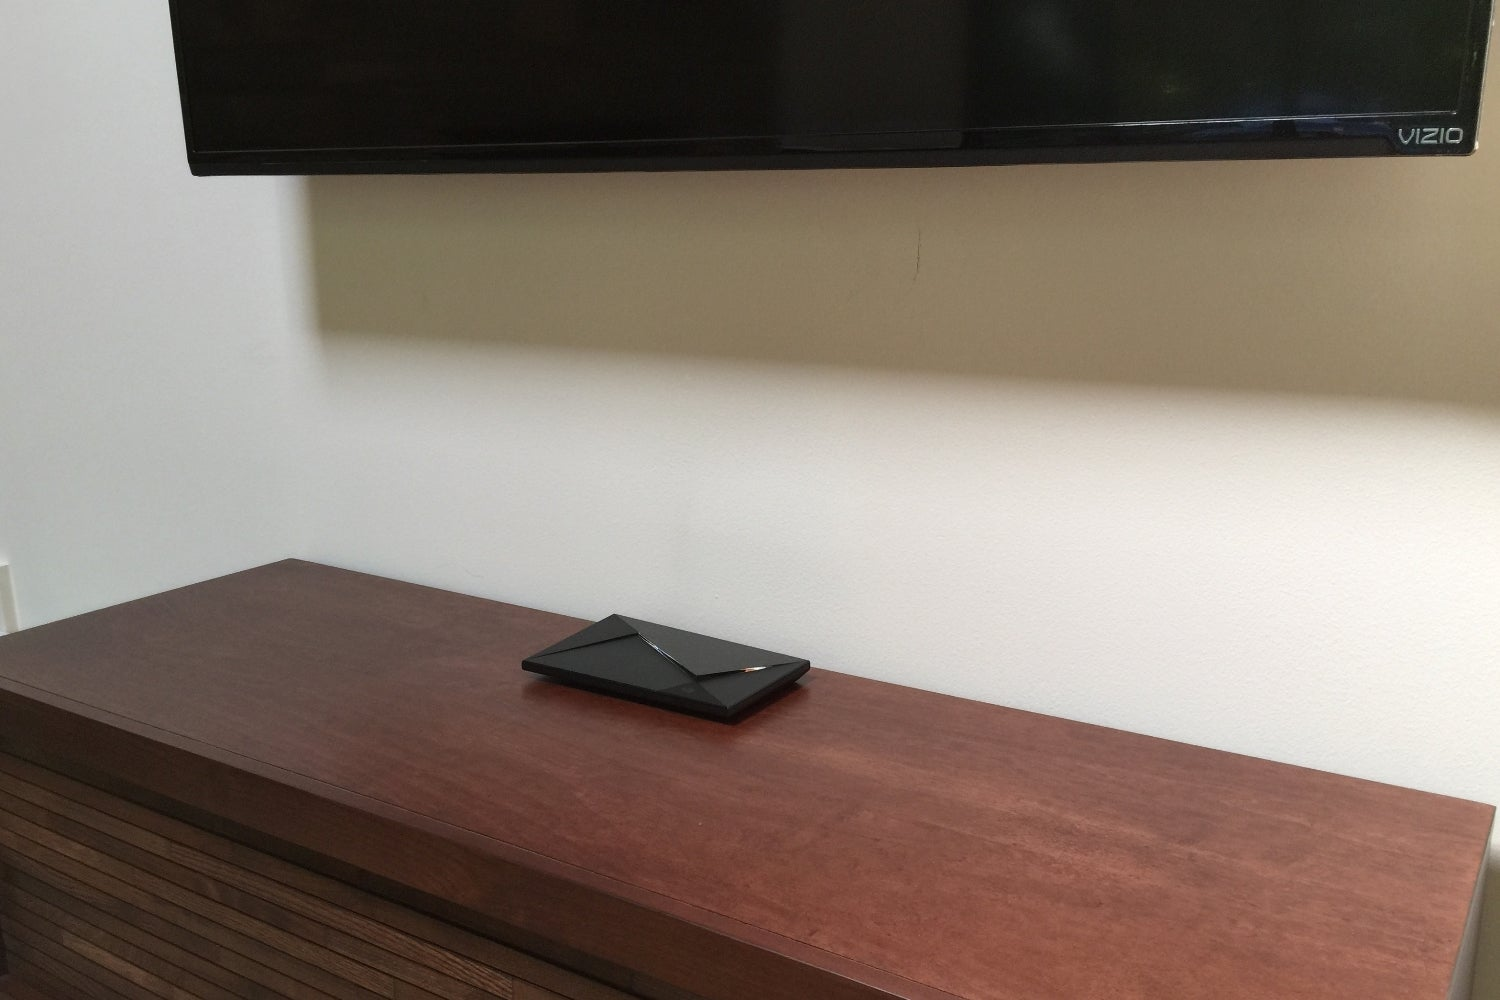 Nvidia Shield hands-on: The first high-end Android TV box